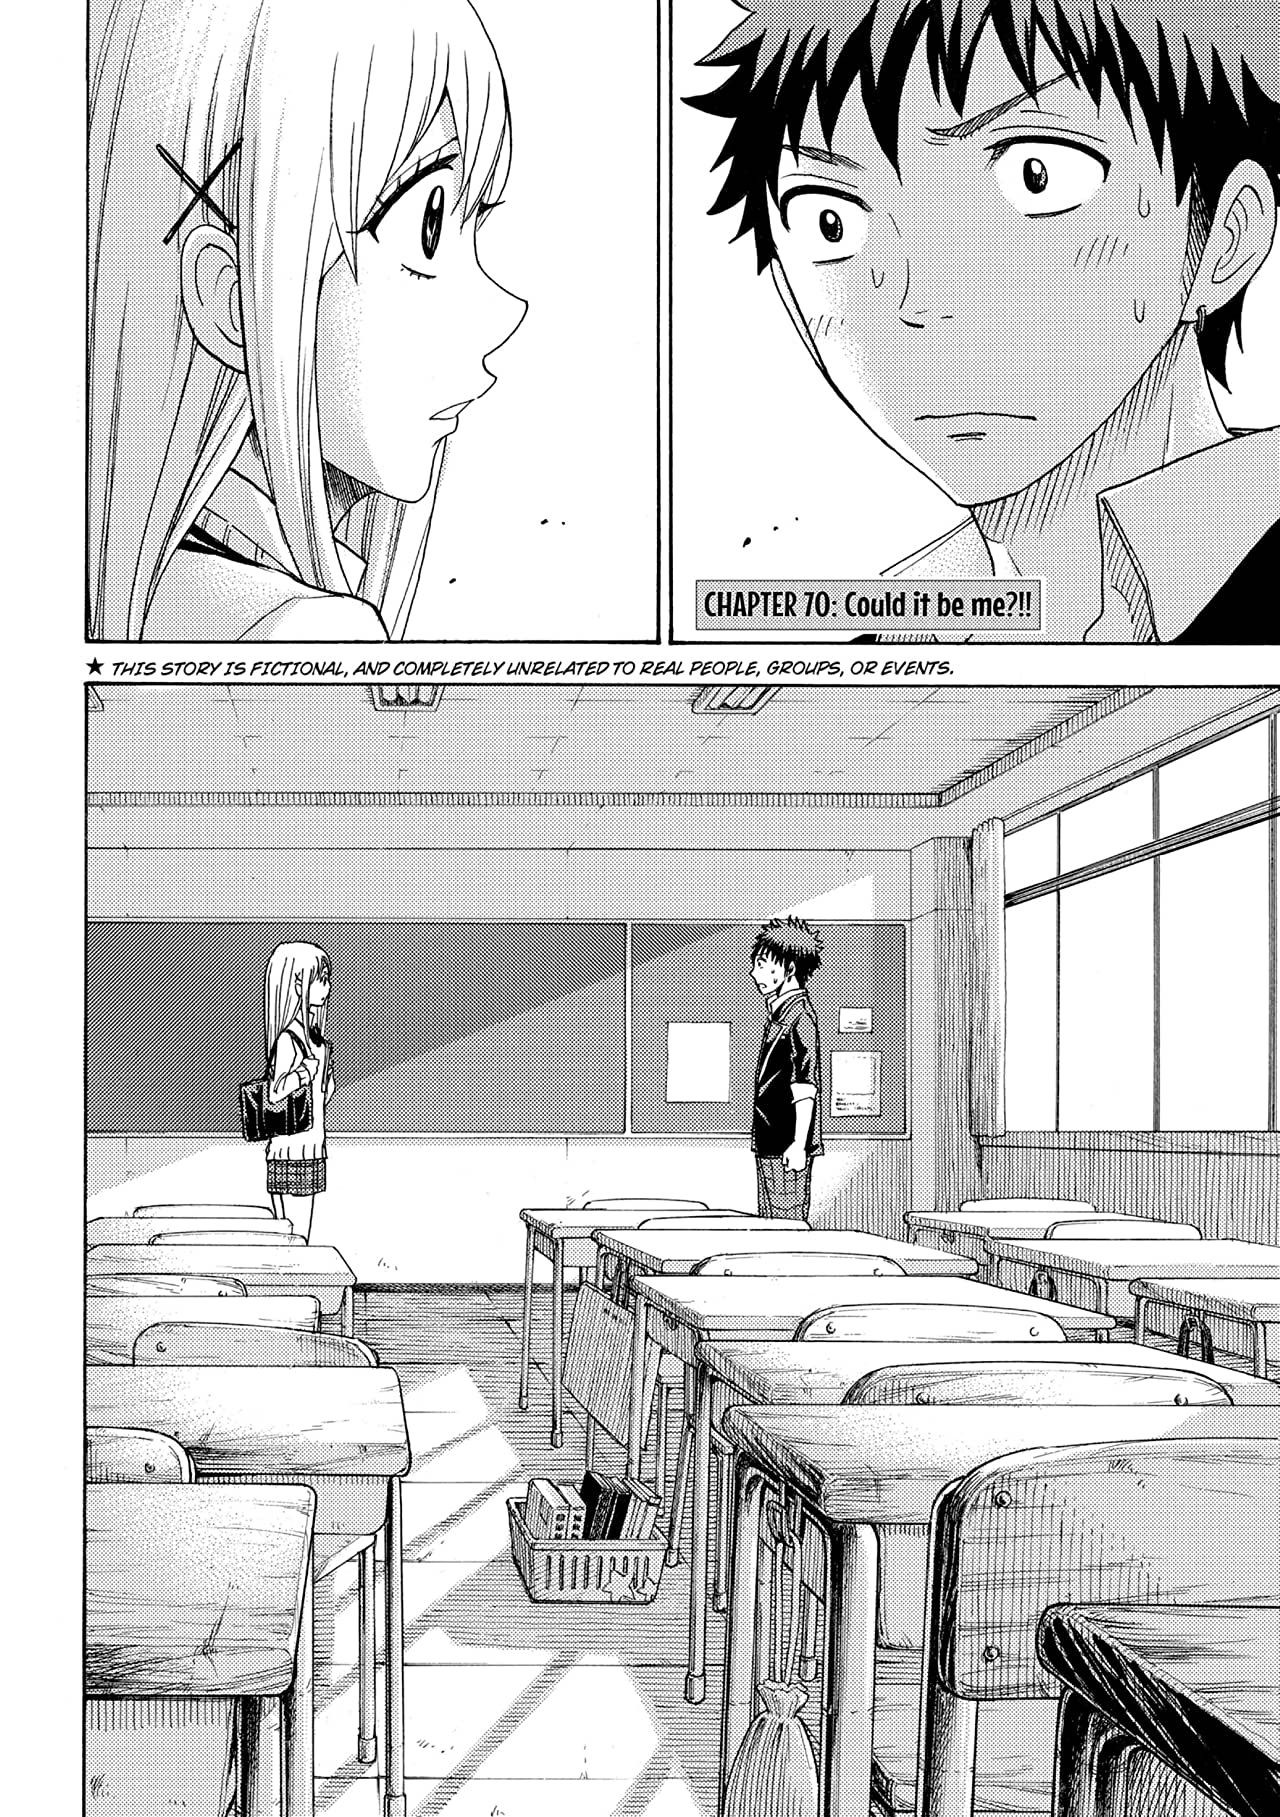 Yamada-kun and the Seven Witches #70